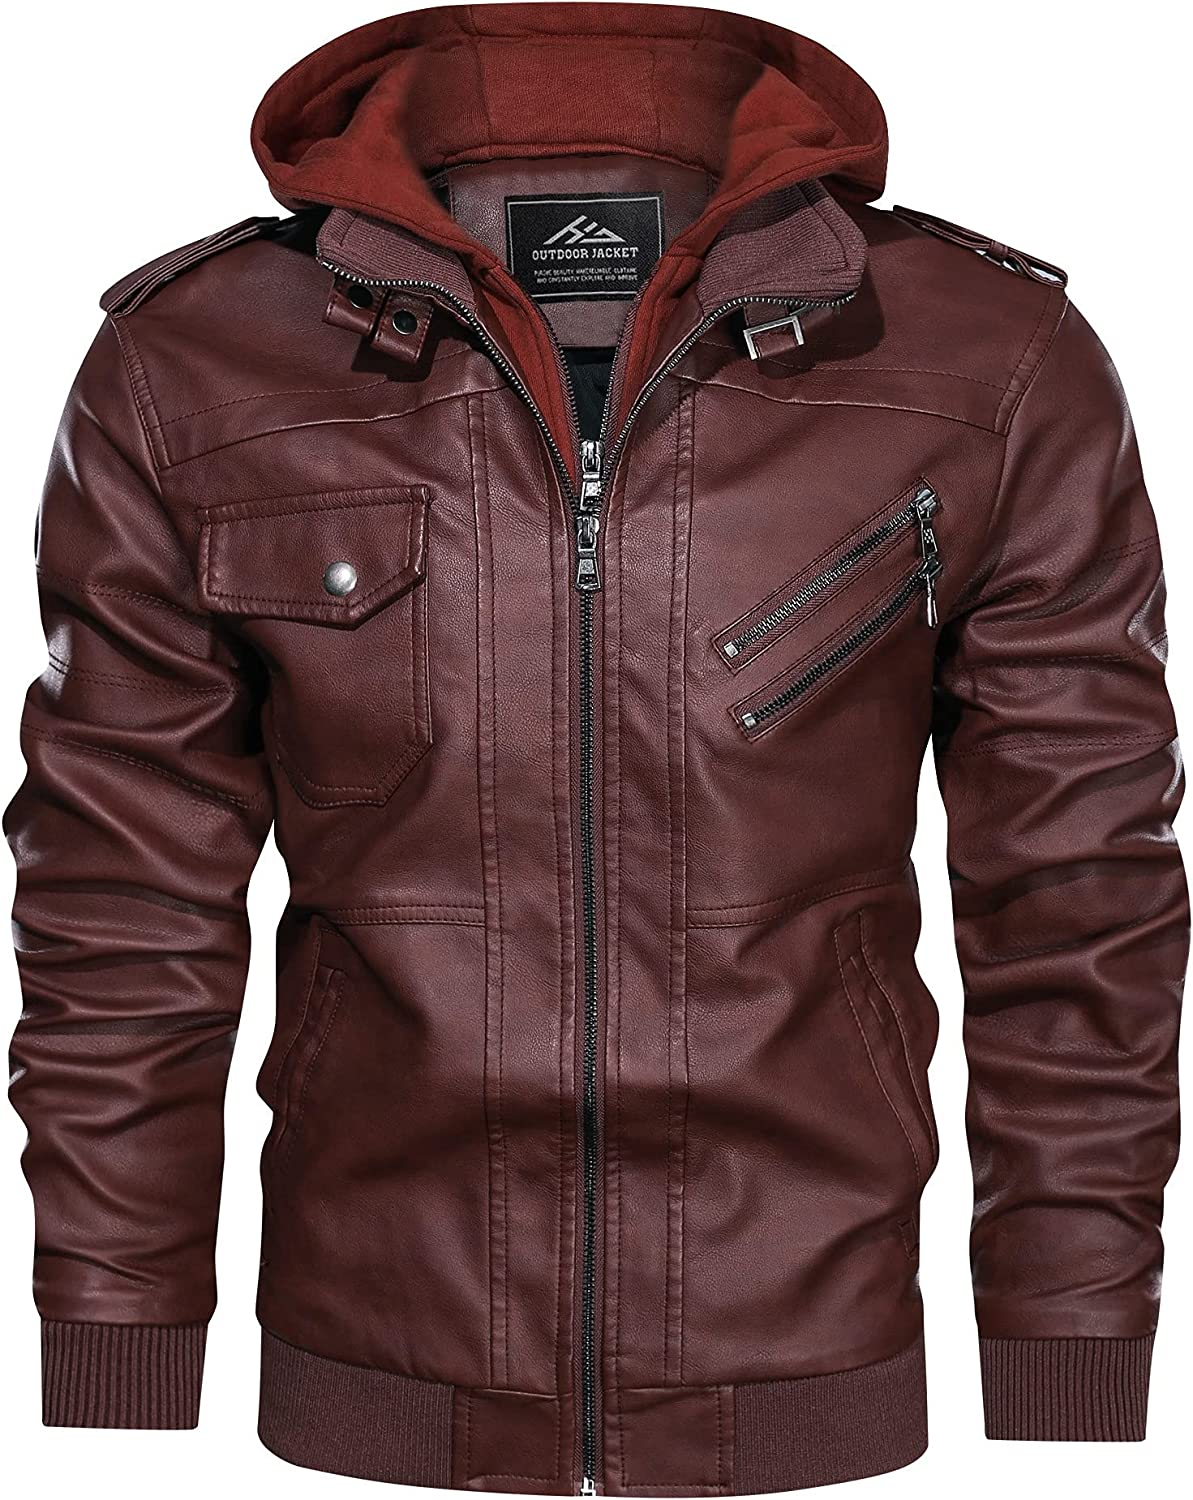 HJWWIN Mens Faux Leather Motorcycle Jacket Vintage Biker Bomber Jacket with Removable Hood